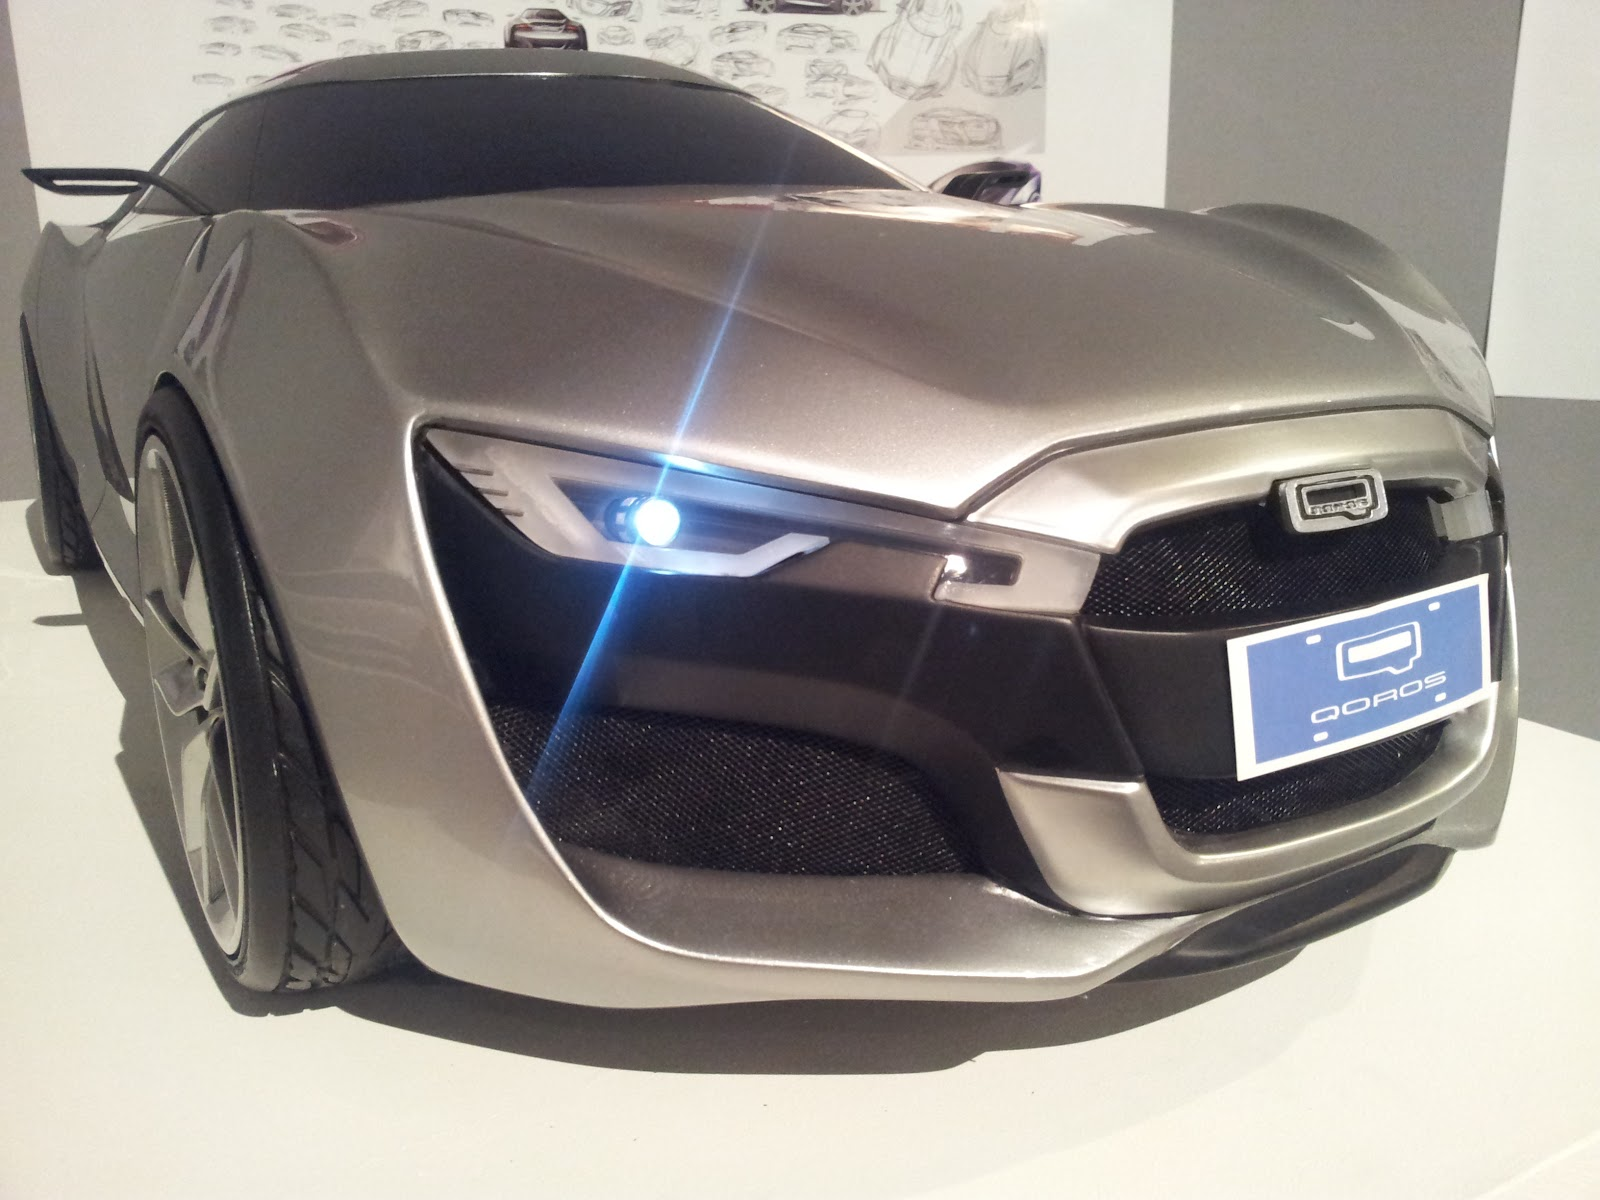 QOROS Is Little Brand With Big Ideas - Qoros9 and Flagship Concept Designs Maturing 9